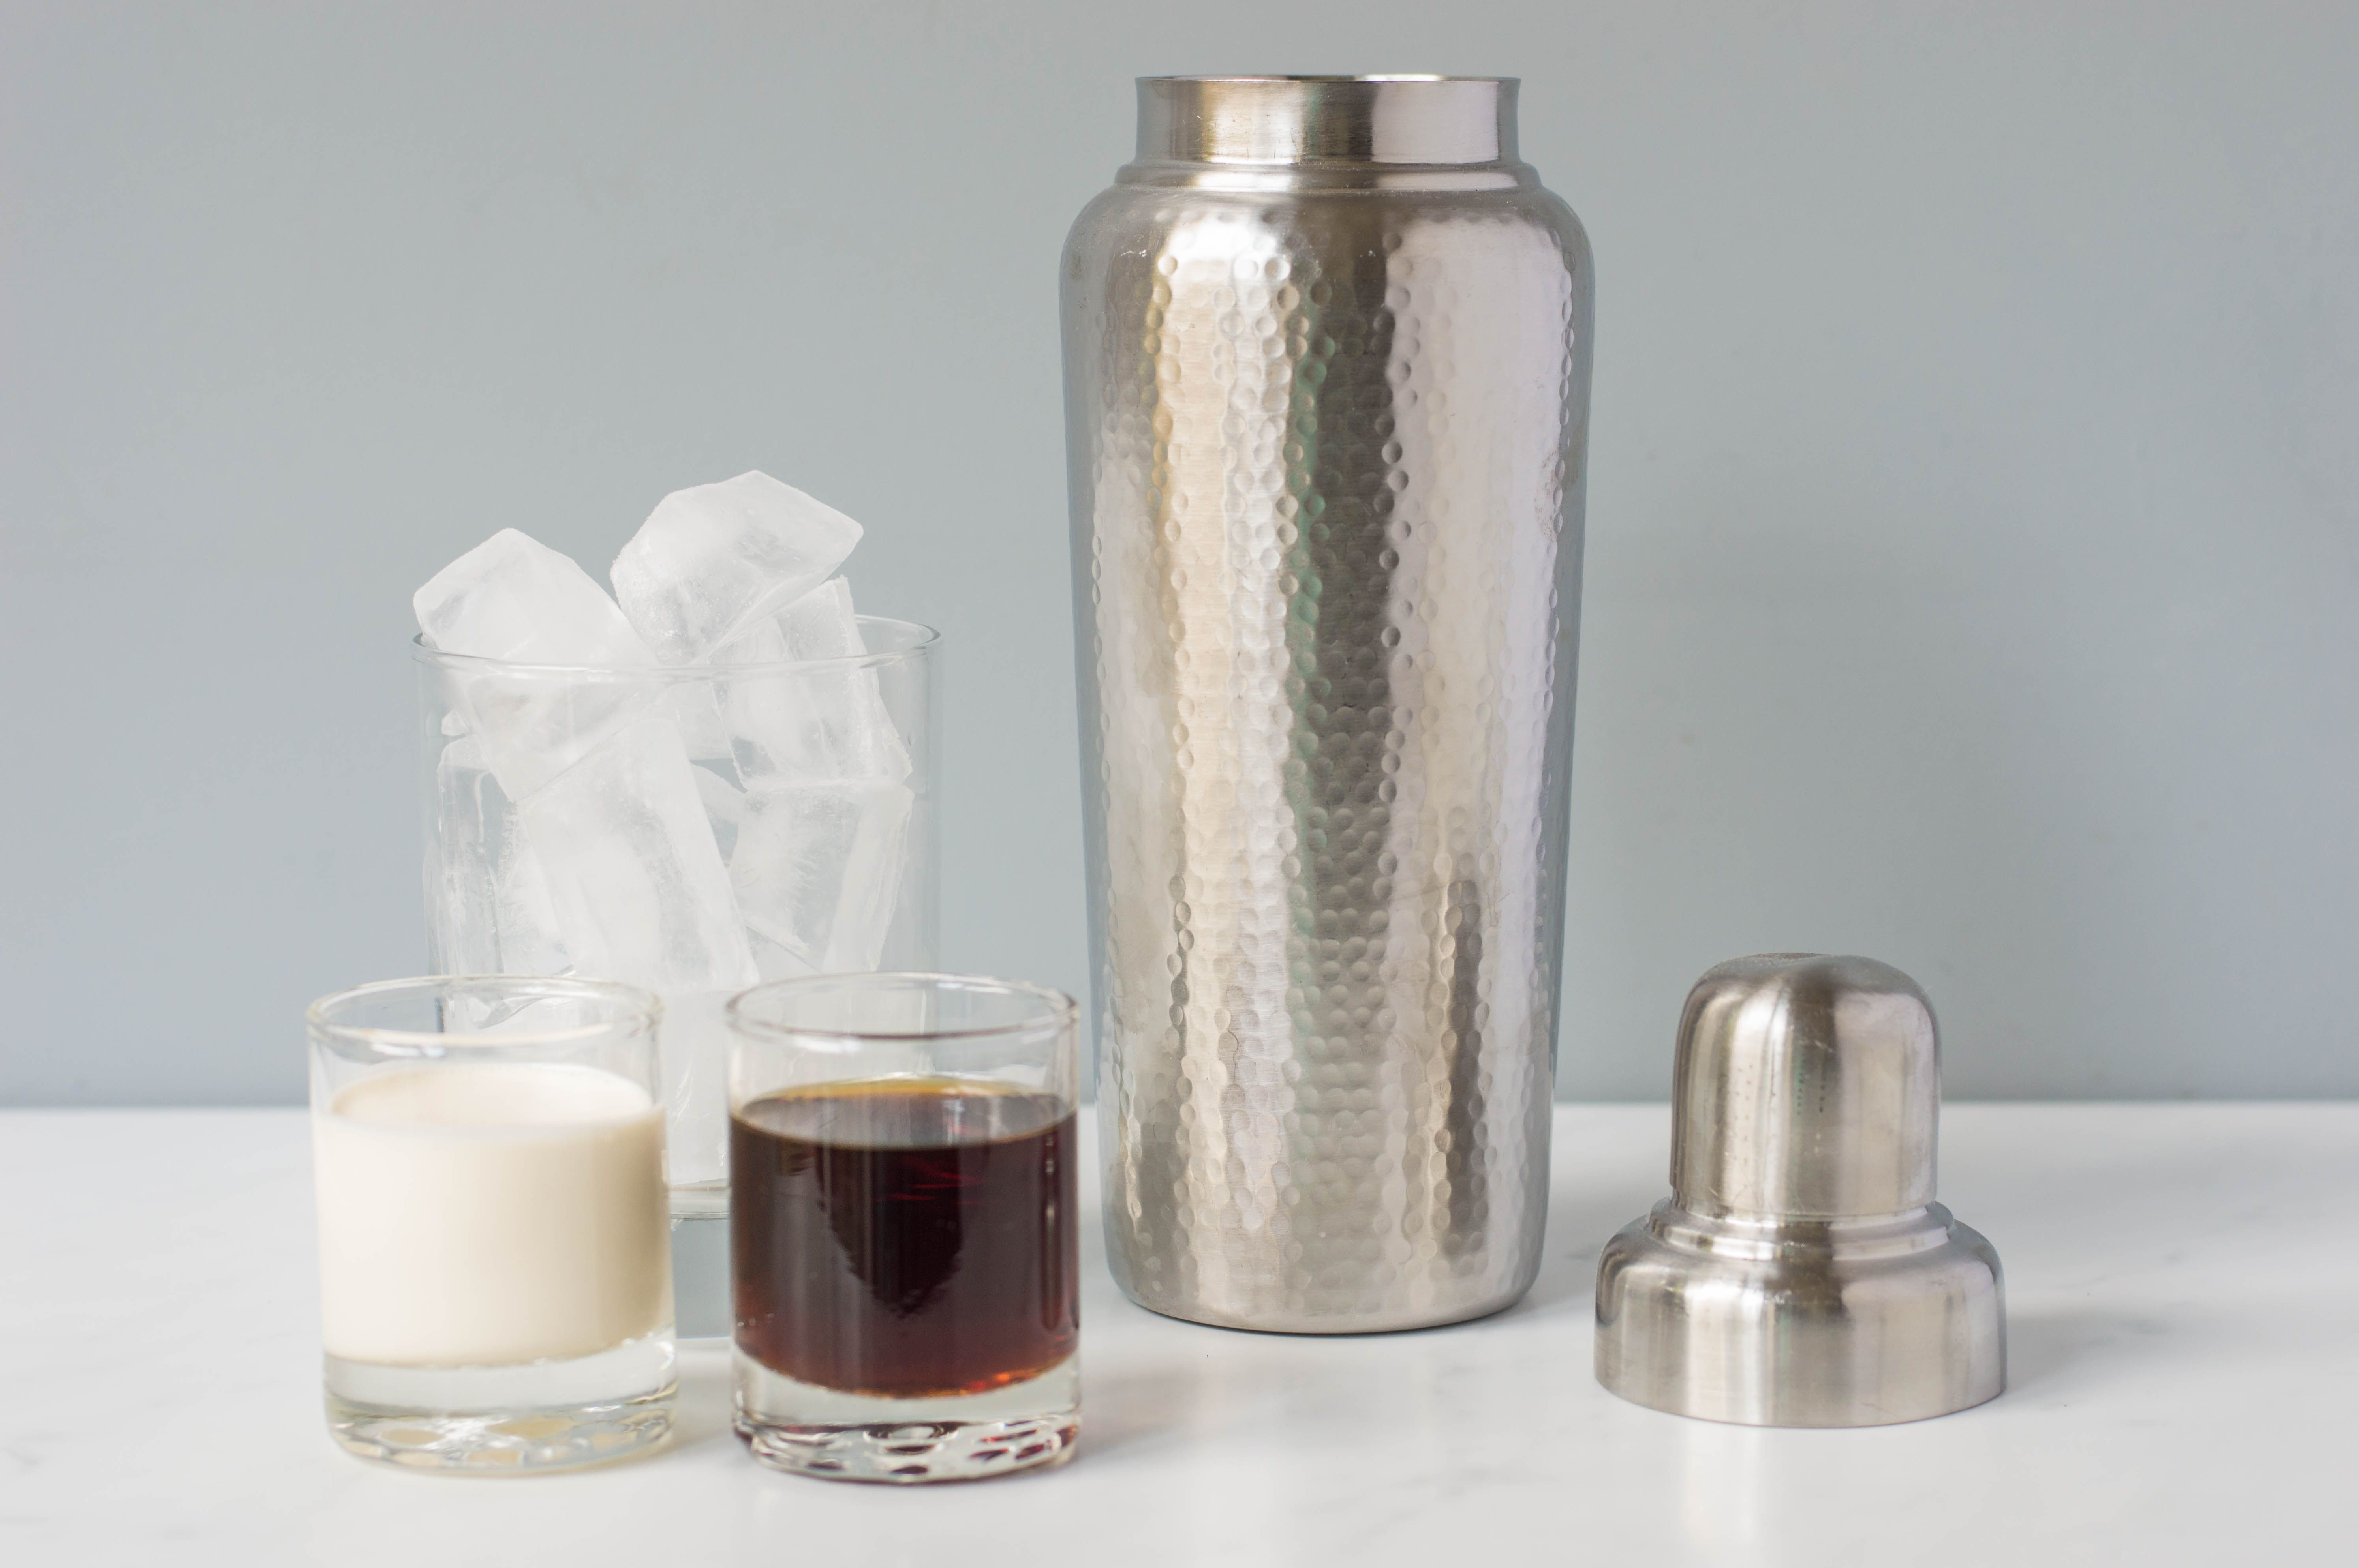 Cream and coffee liqueur in separate glasses next to a cocktail shaker